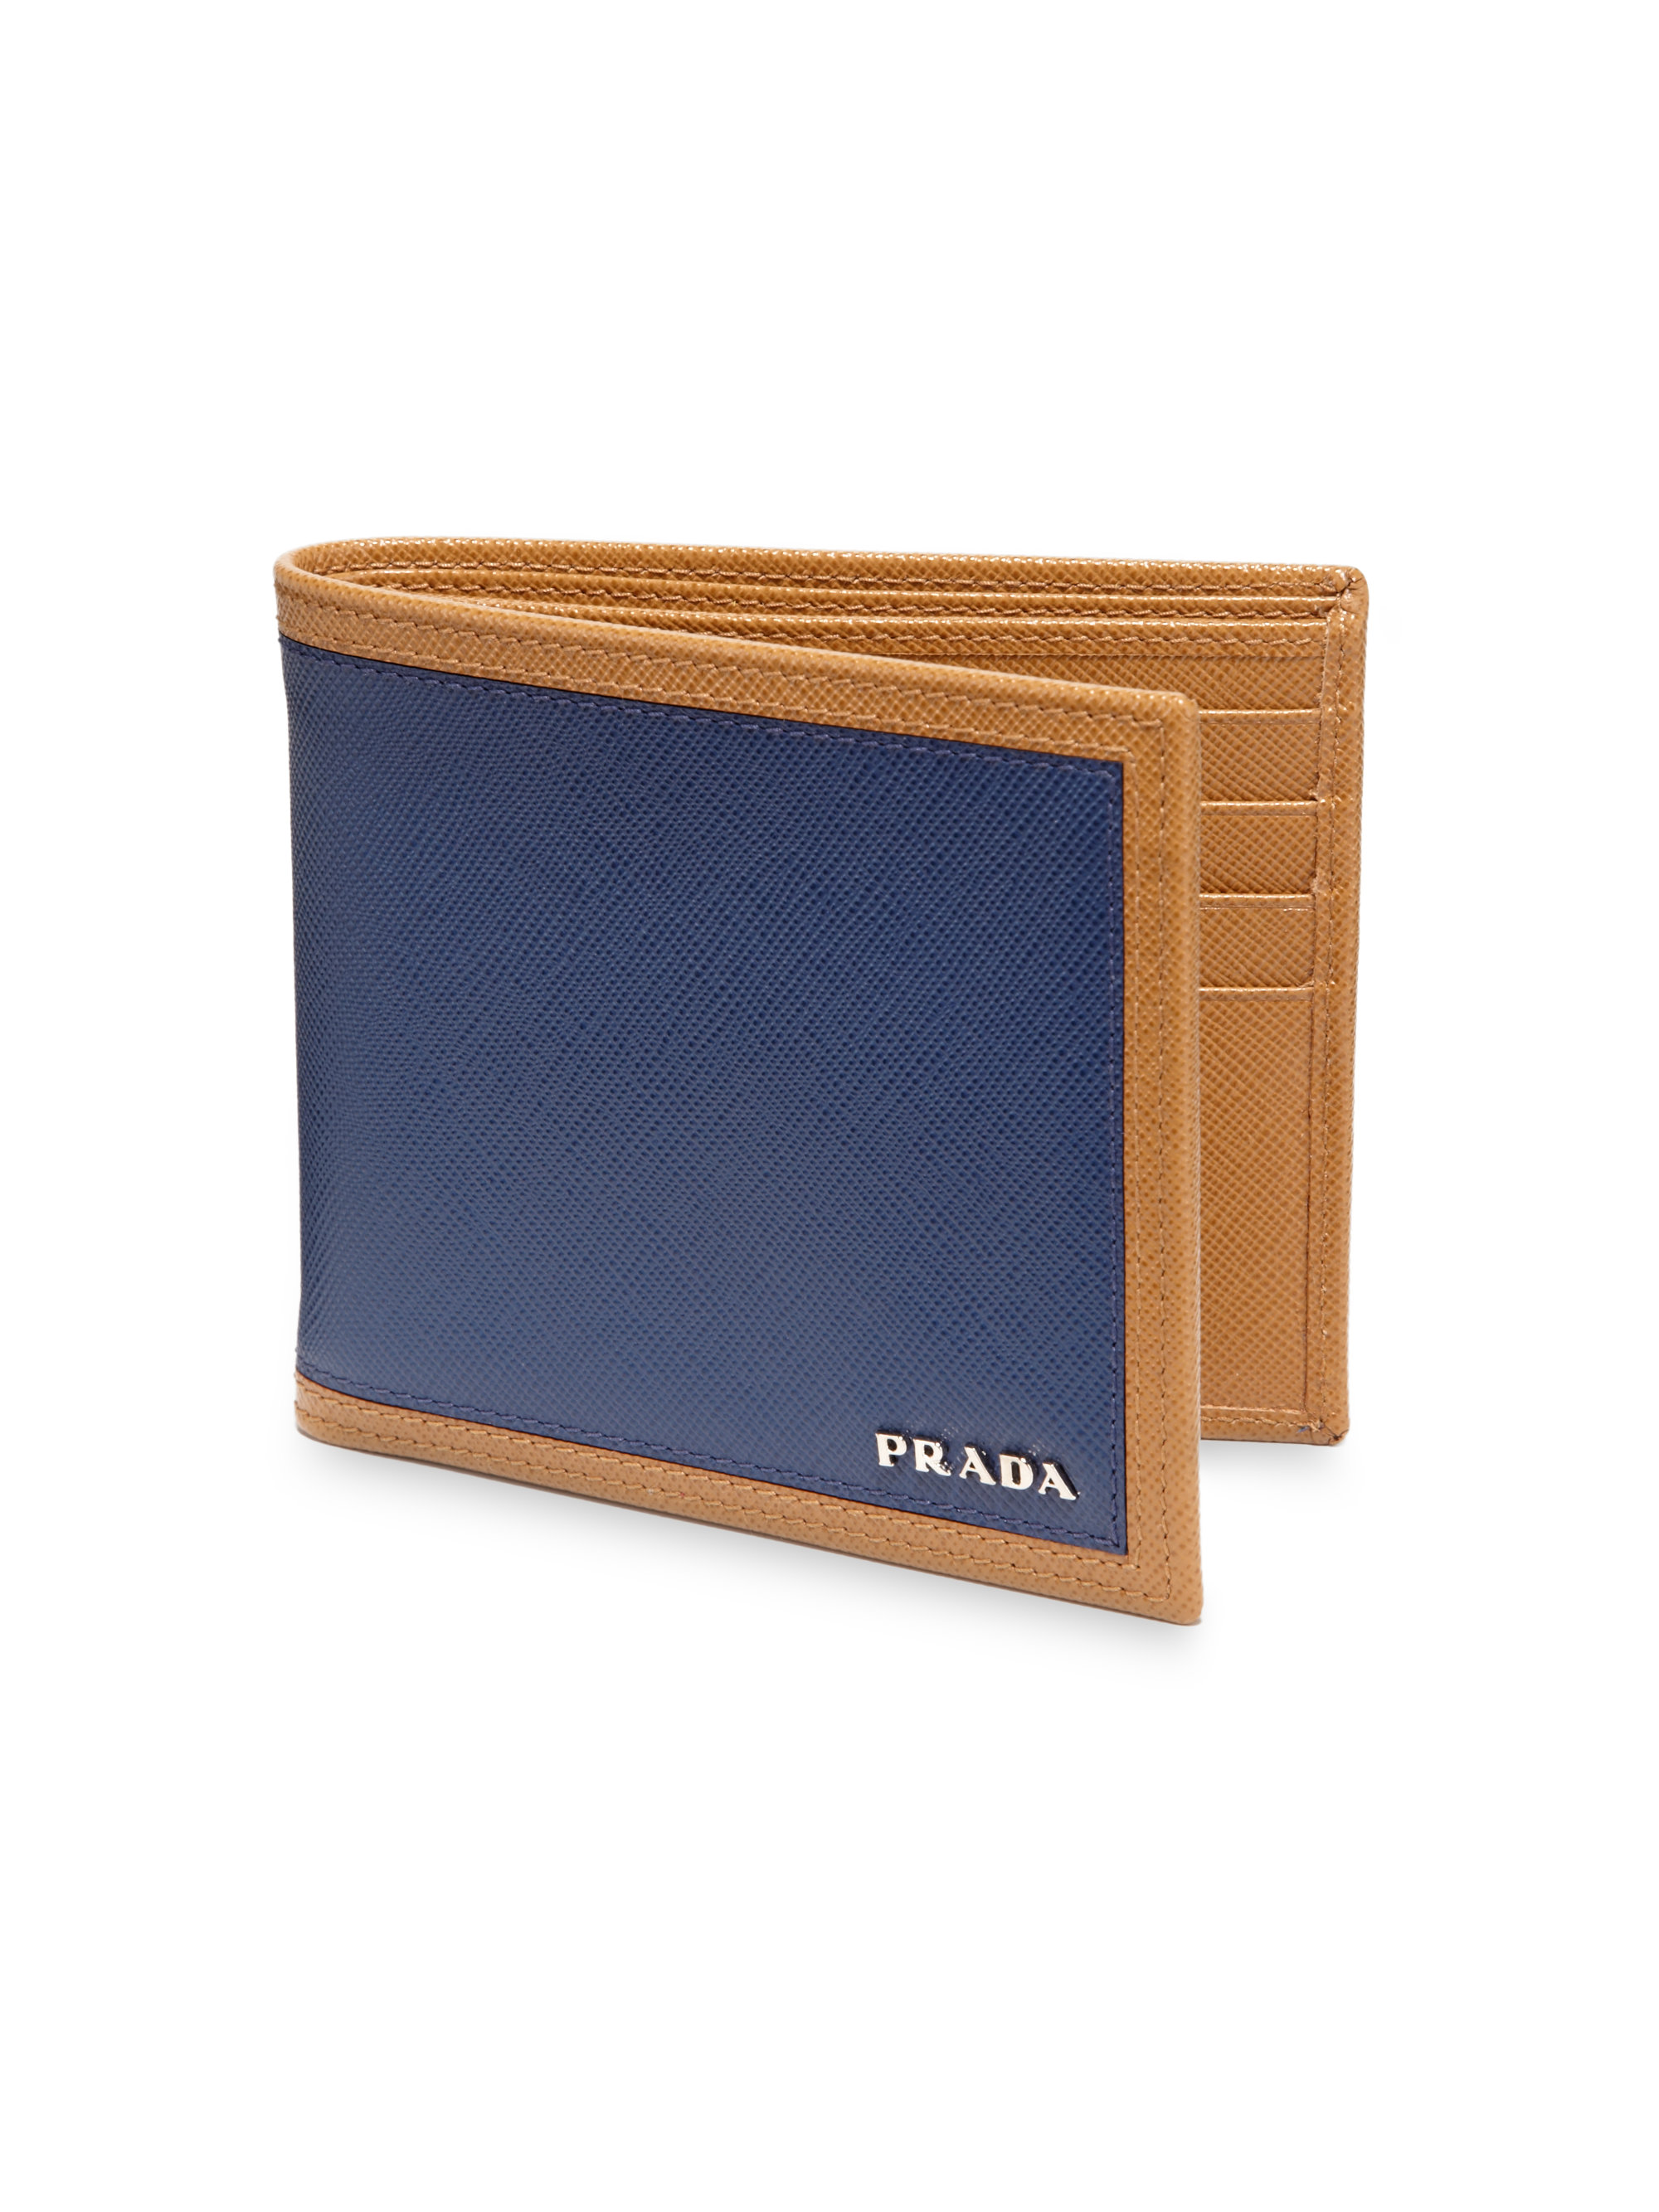 d7c080ab0fef Prada Saffiano Frame Billfold Wallet in Blue for Men - Lyst